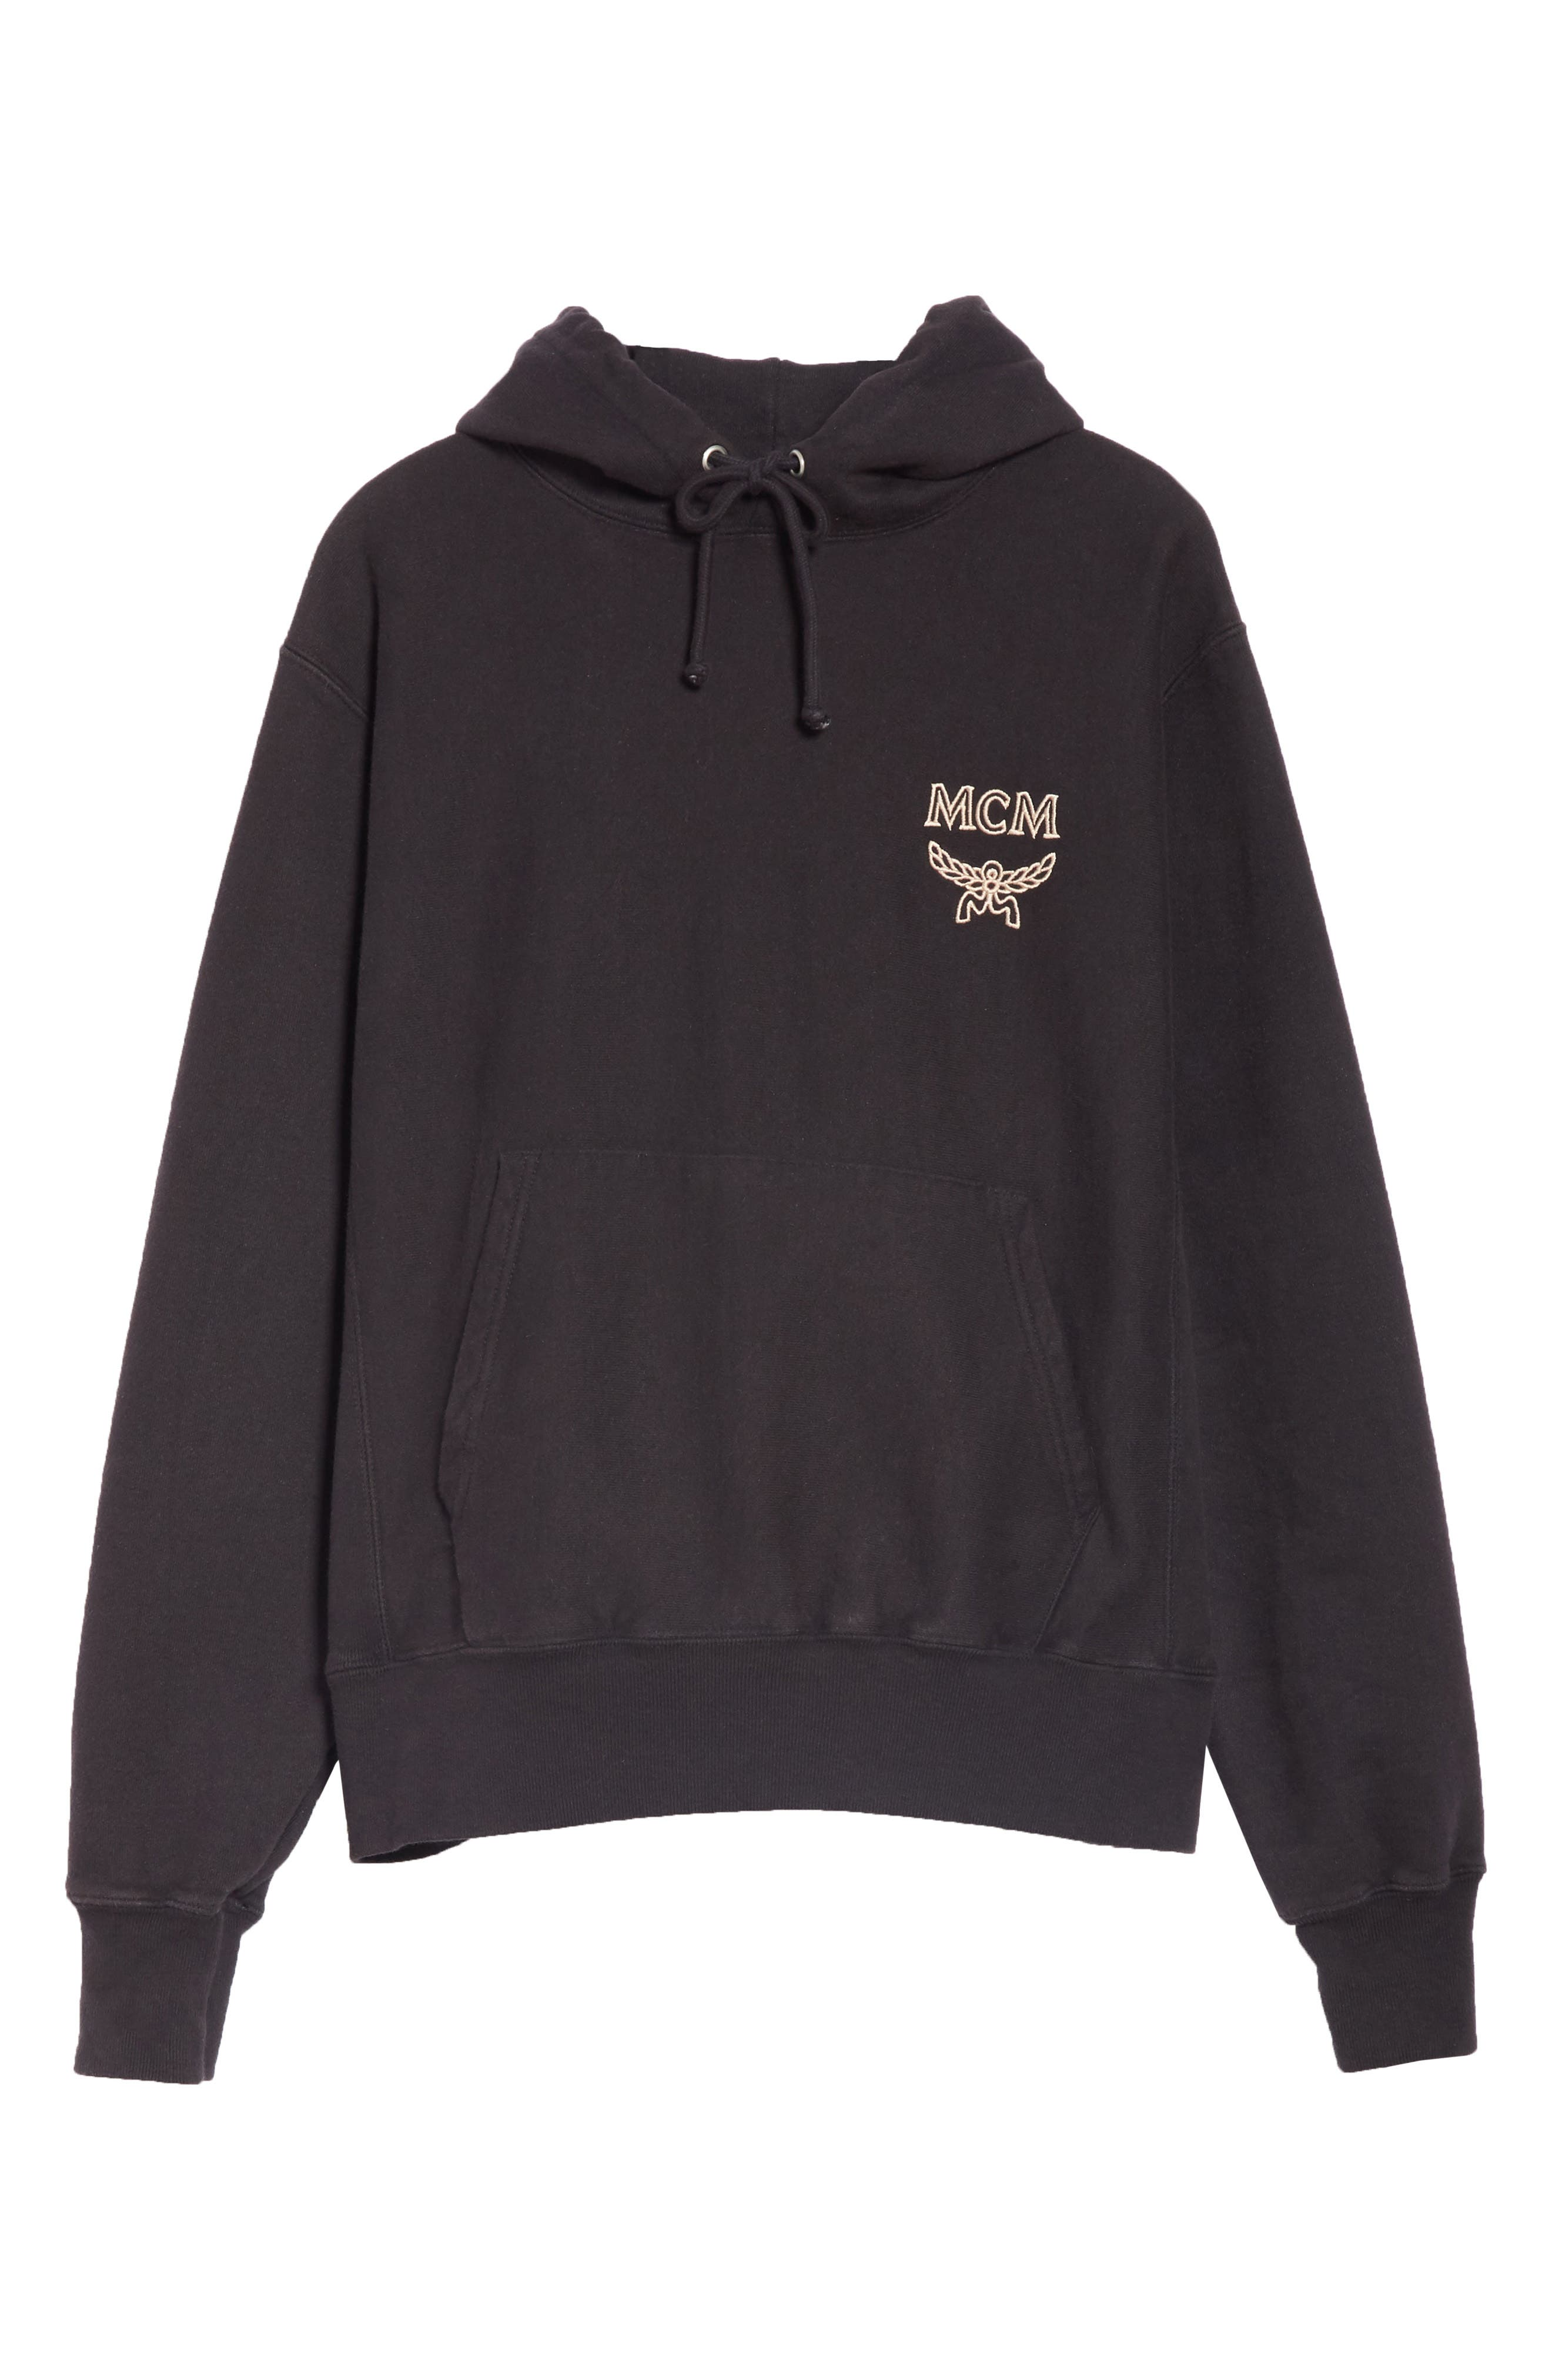 x MCM Pullover Hoodie,                             Main thumbnail 1, color,                             001